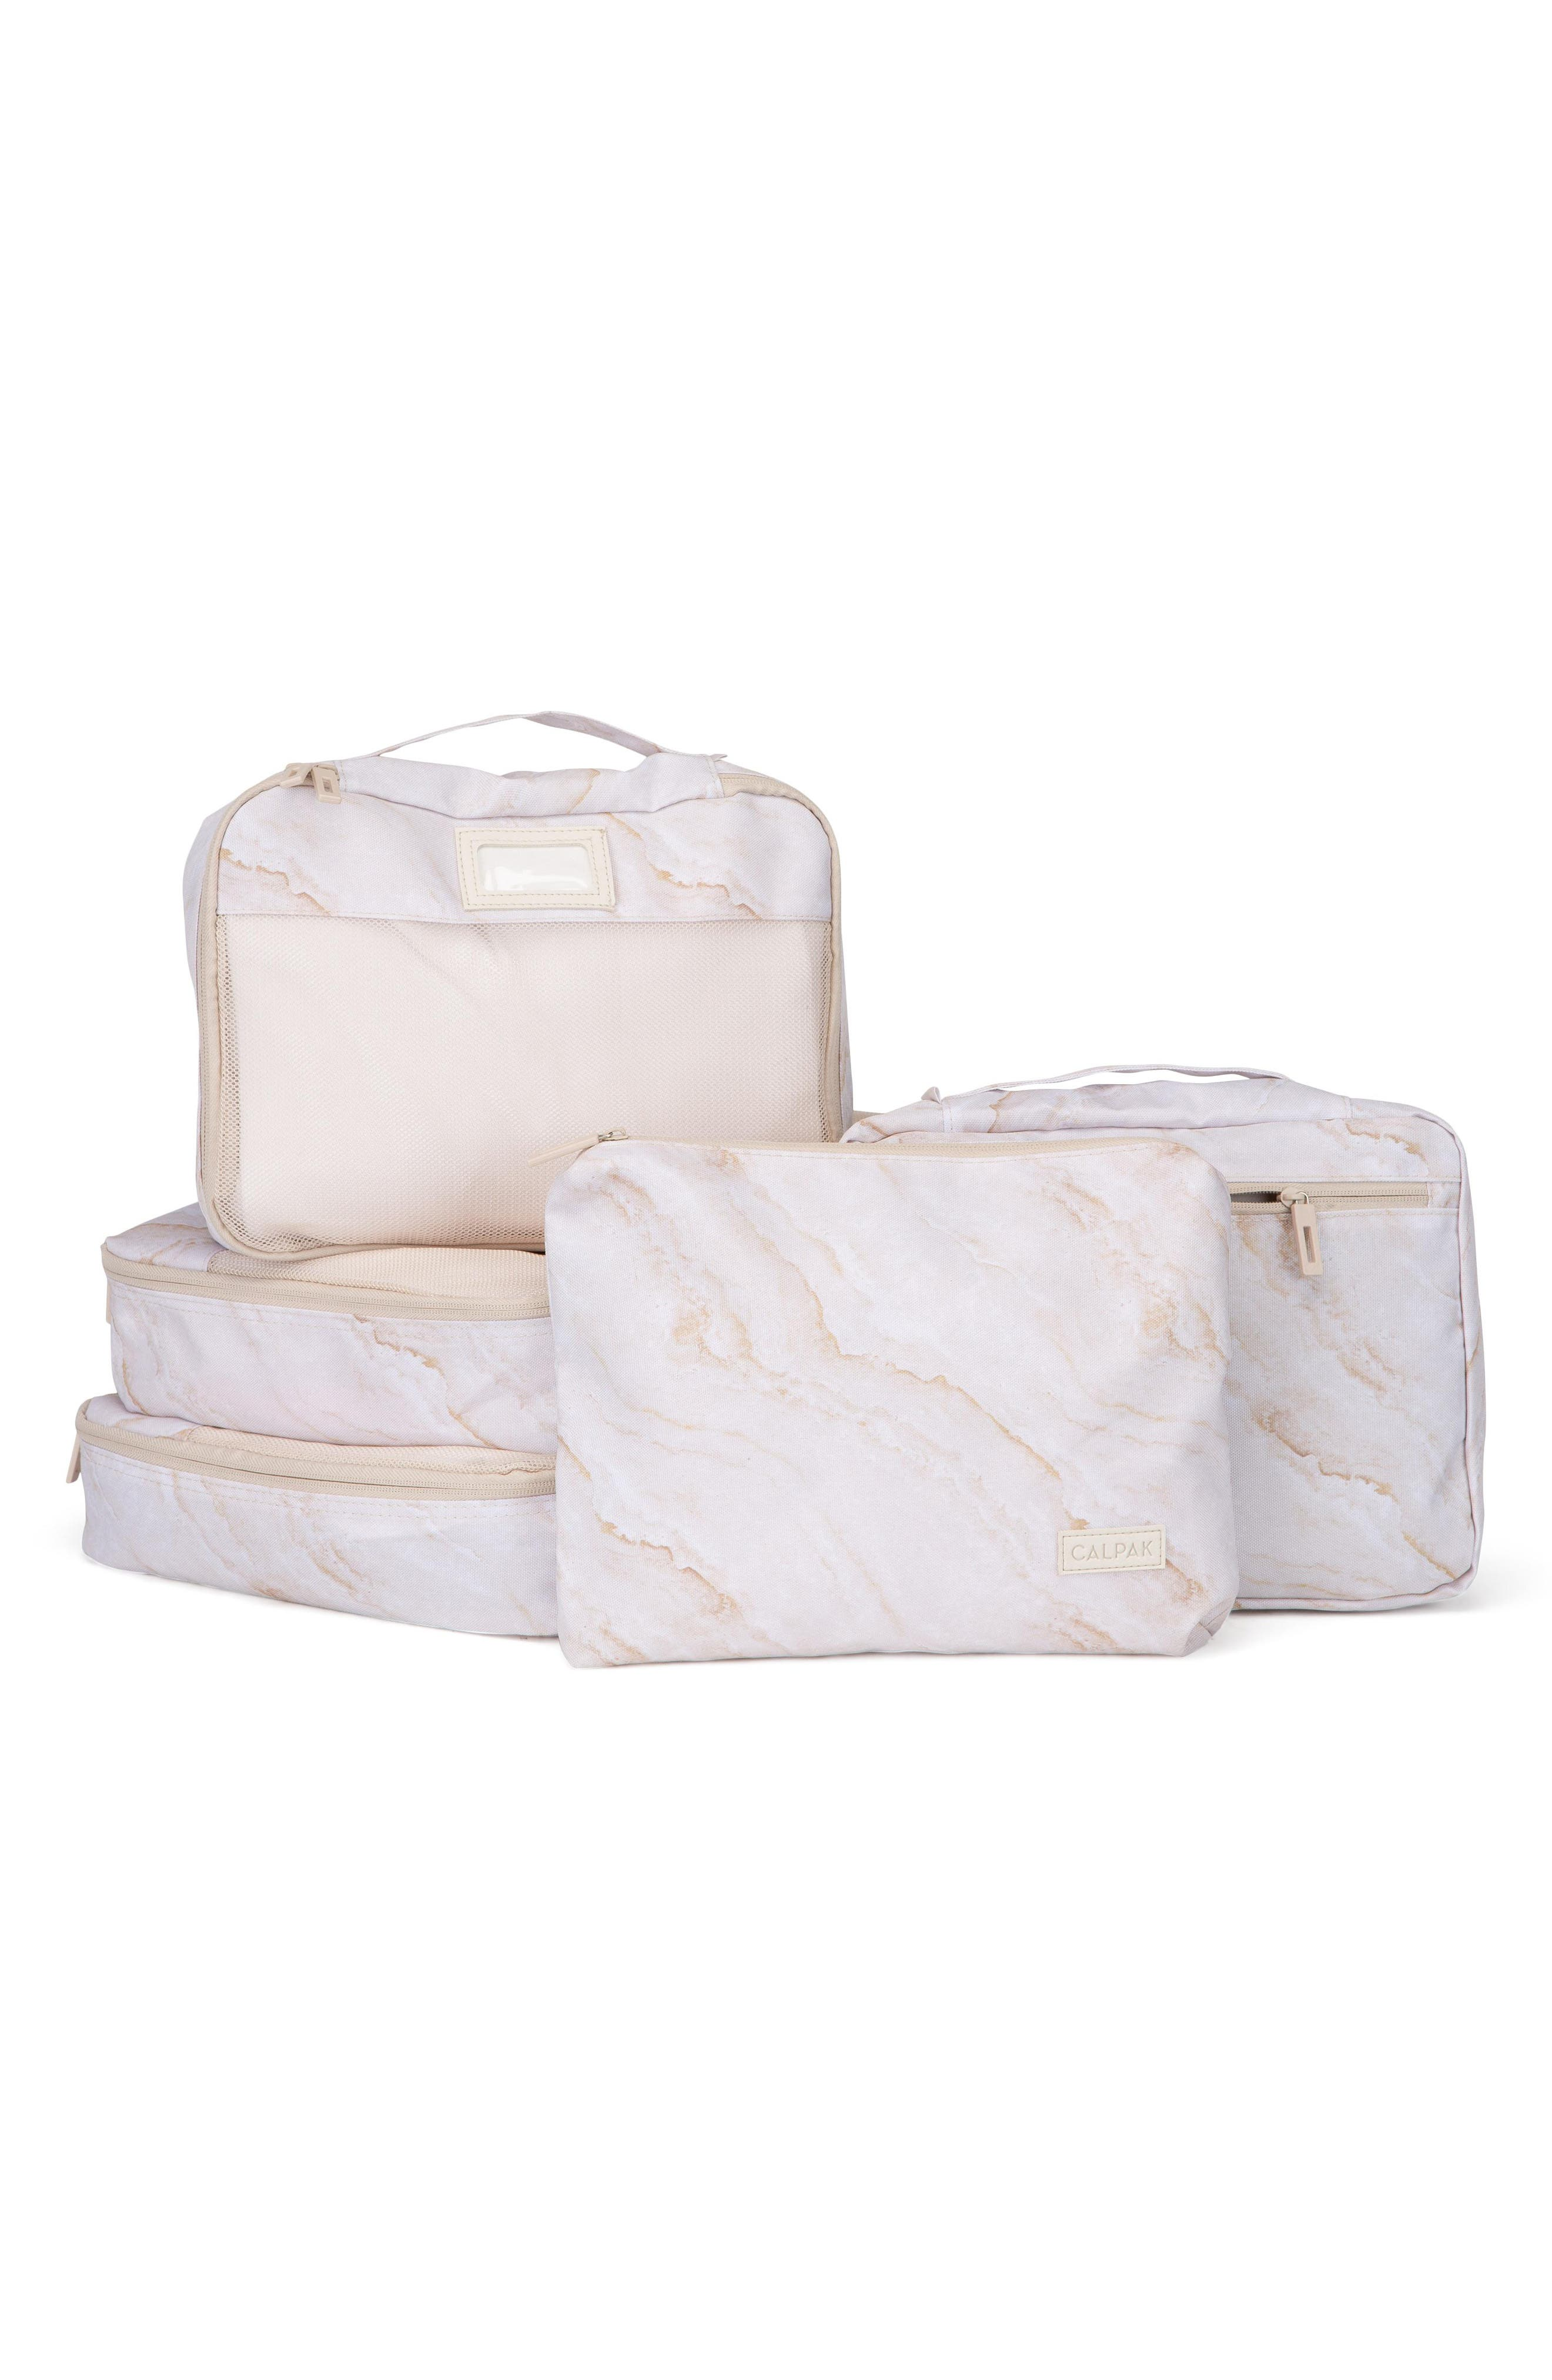 5-Piece Packing Cube Set,                             Main thumbnail 1, color,                             GOLD MARBLE